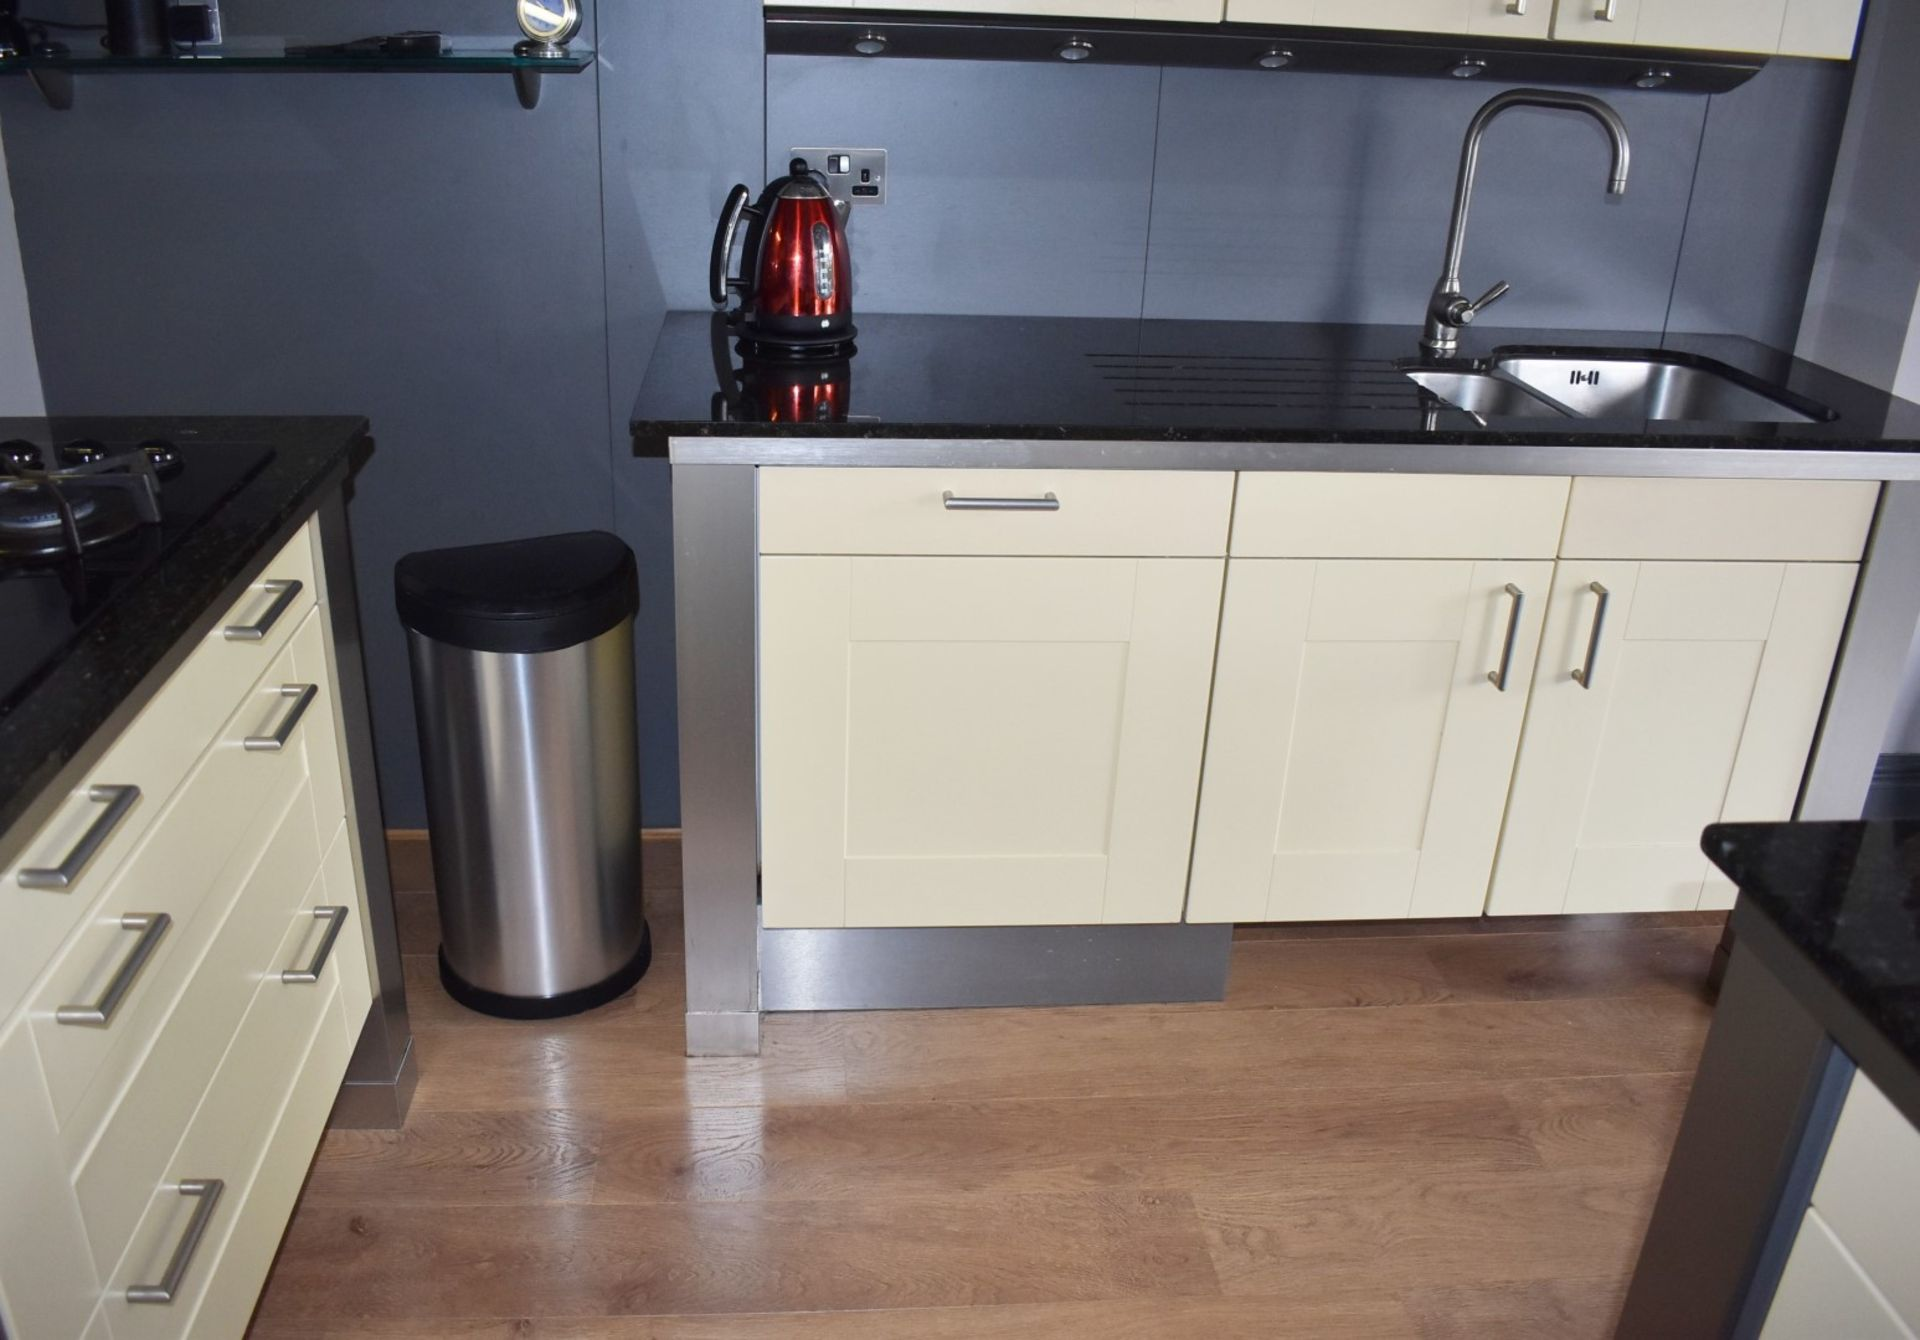 1 x SieMatic Contemporary Fitted Kitchen With Appliances - Features Shaker Style Doors, Central - Image 10 of 96